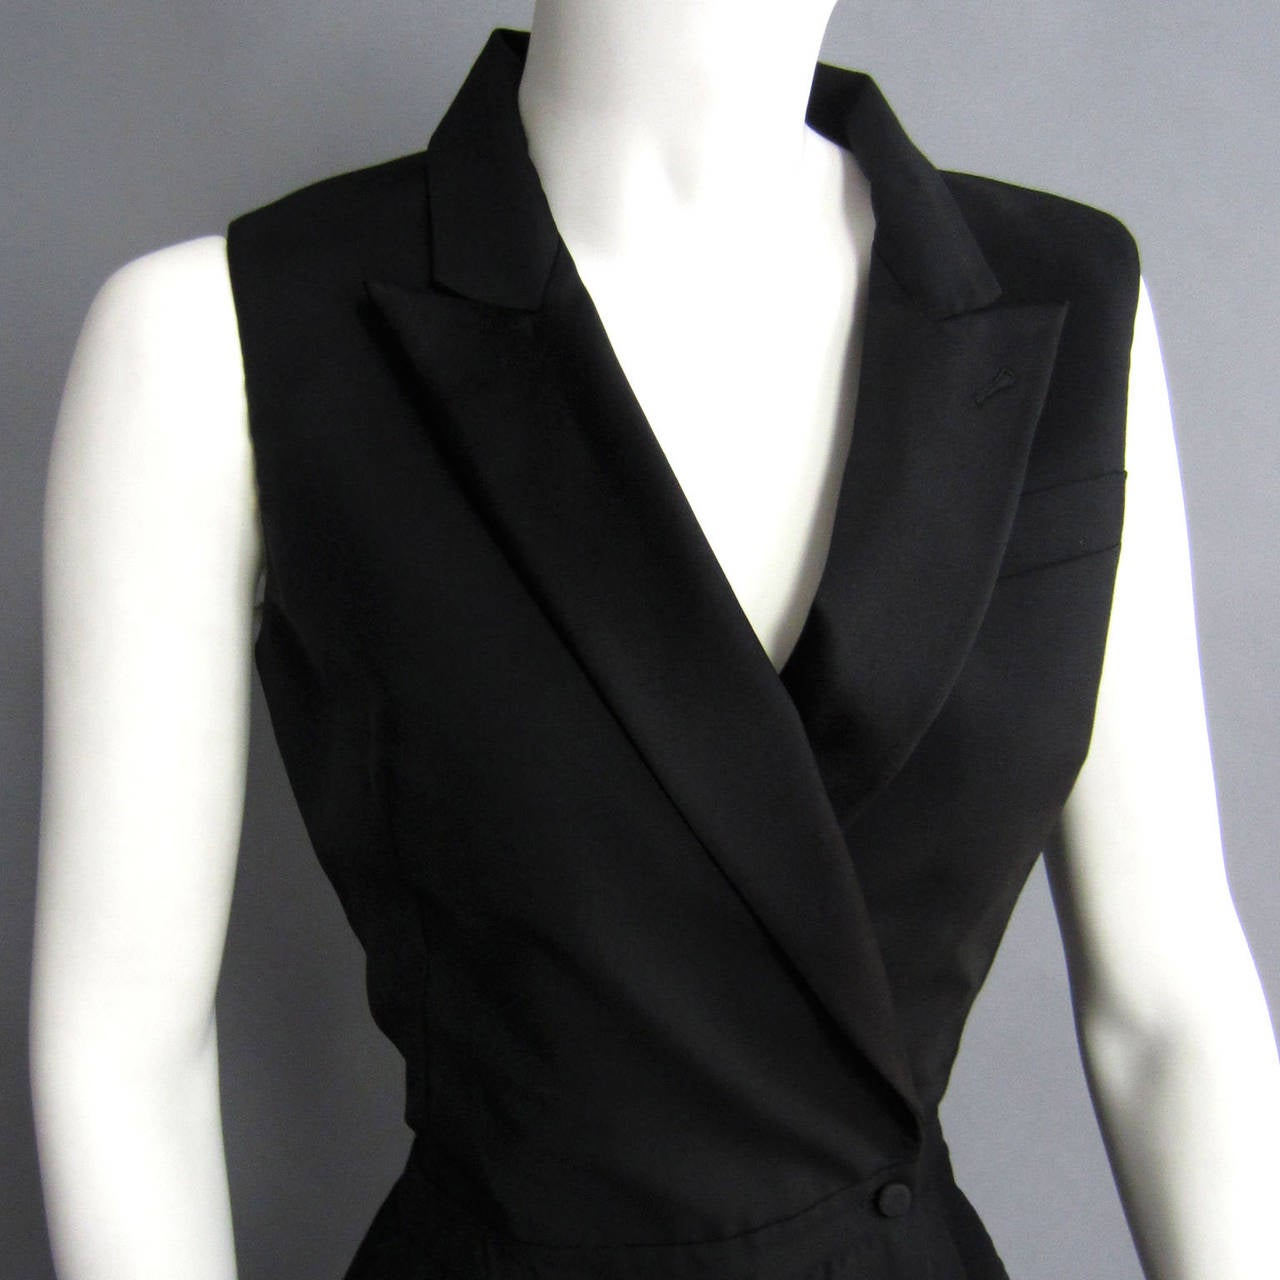 This ALEXANDER McQUEEN jumpsuit features a jacket style top. There is a satin lapel that frames the neckline. The top wraps over itself, with interior button closures on the waist. There is slight pleating to the pants, along with pockets on either